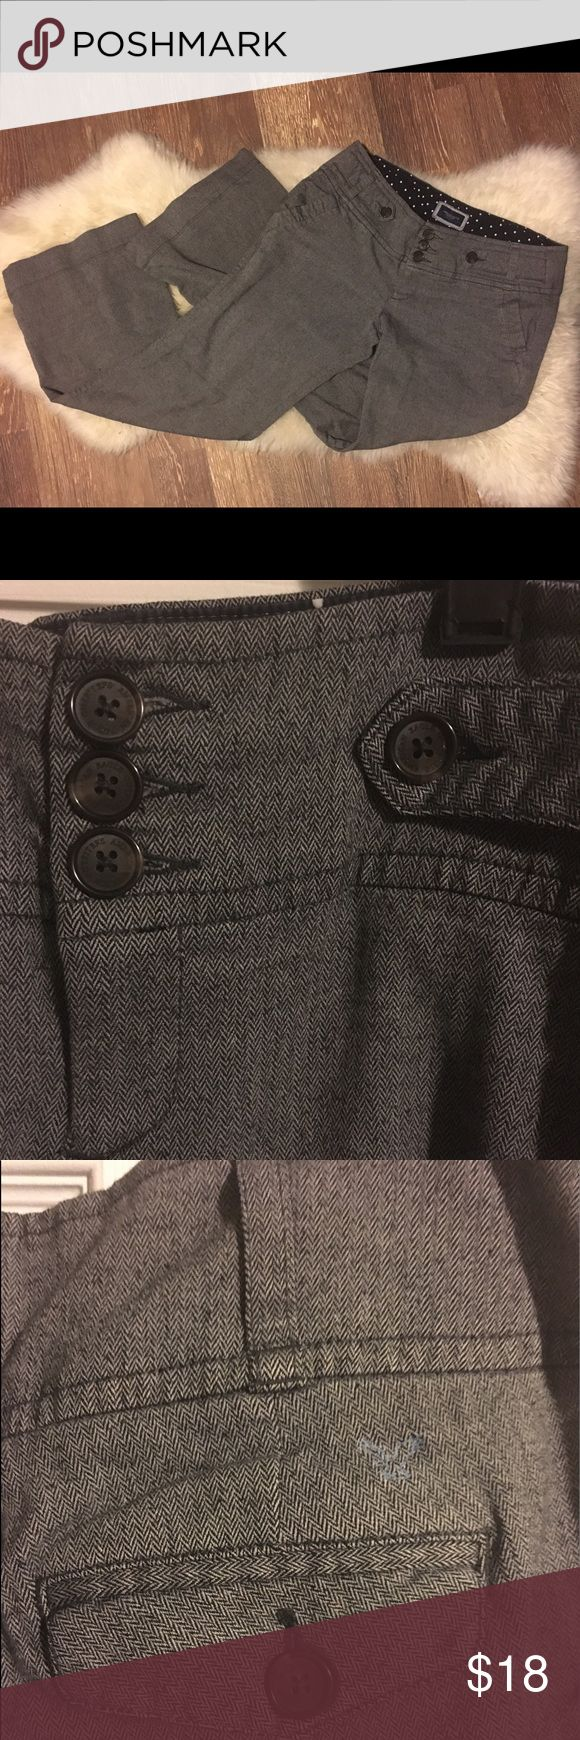 Tweed dress pants by American Eagle 🌺Super cute tweed dress pants from American Eagle! Pretty grey pants with a hint of brown in the fabric, brown buttons, these pants are soft and very comfortable!  Functioning front and back pockets. Excellent condition, no holes/stains/tears. Thanks for looking! 🌺 American Eagle Outfitters Pants Trousers